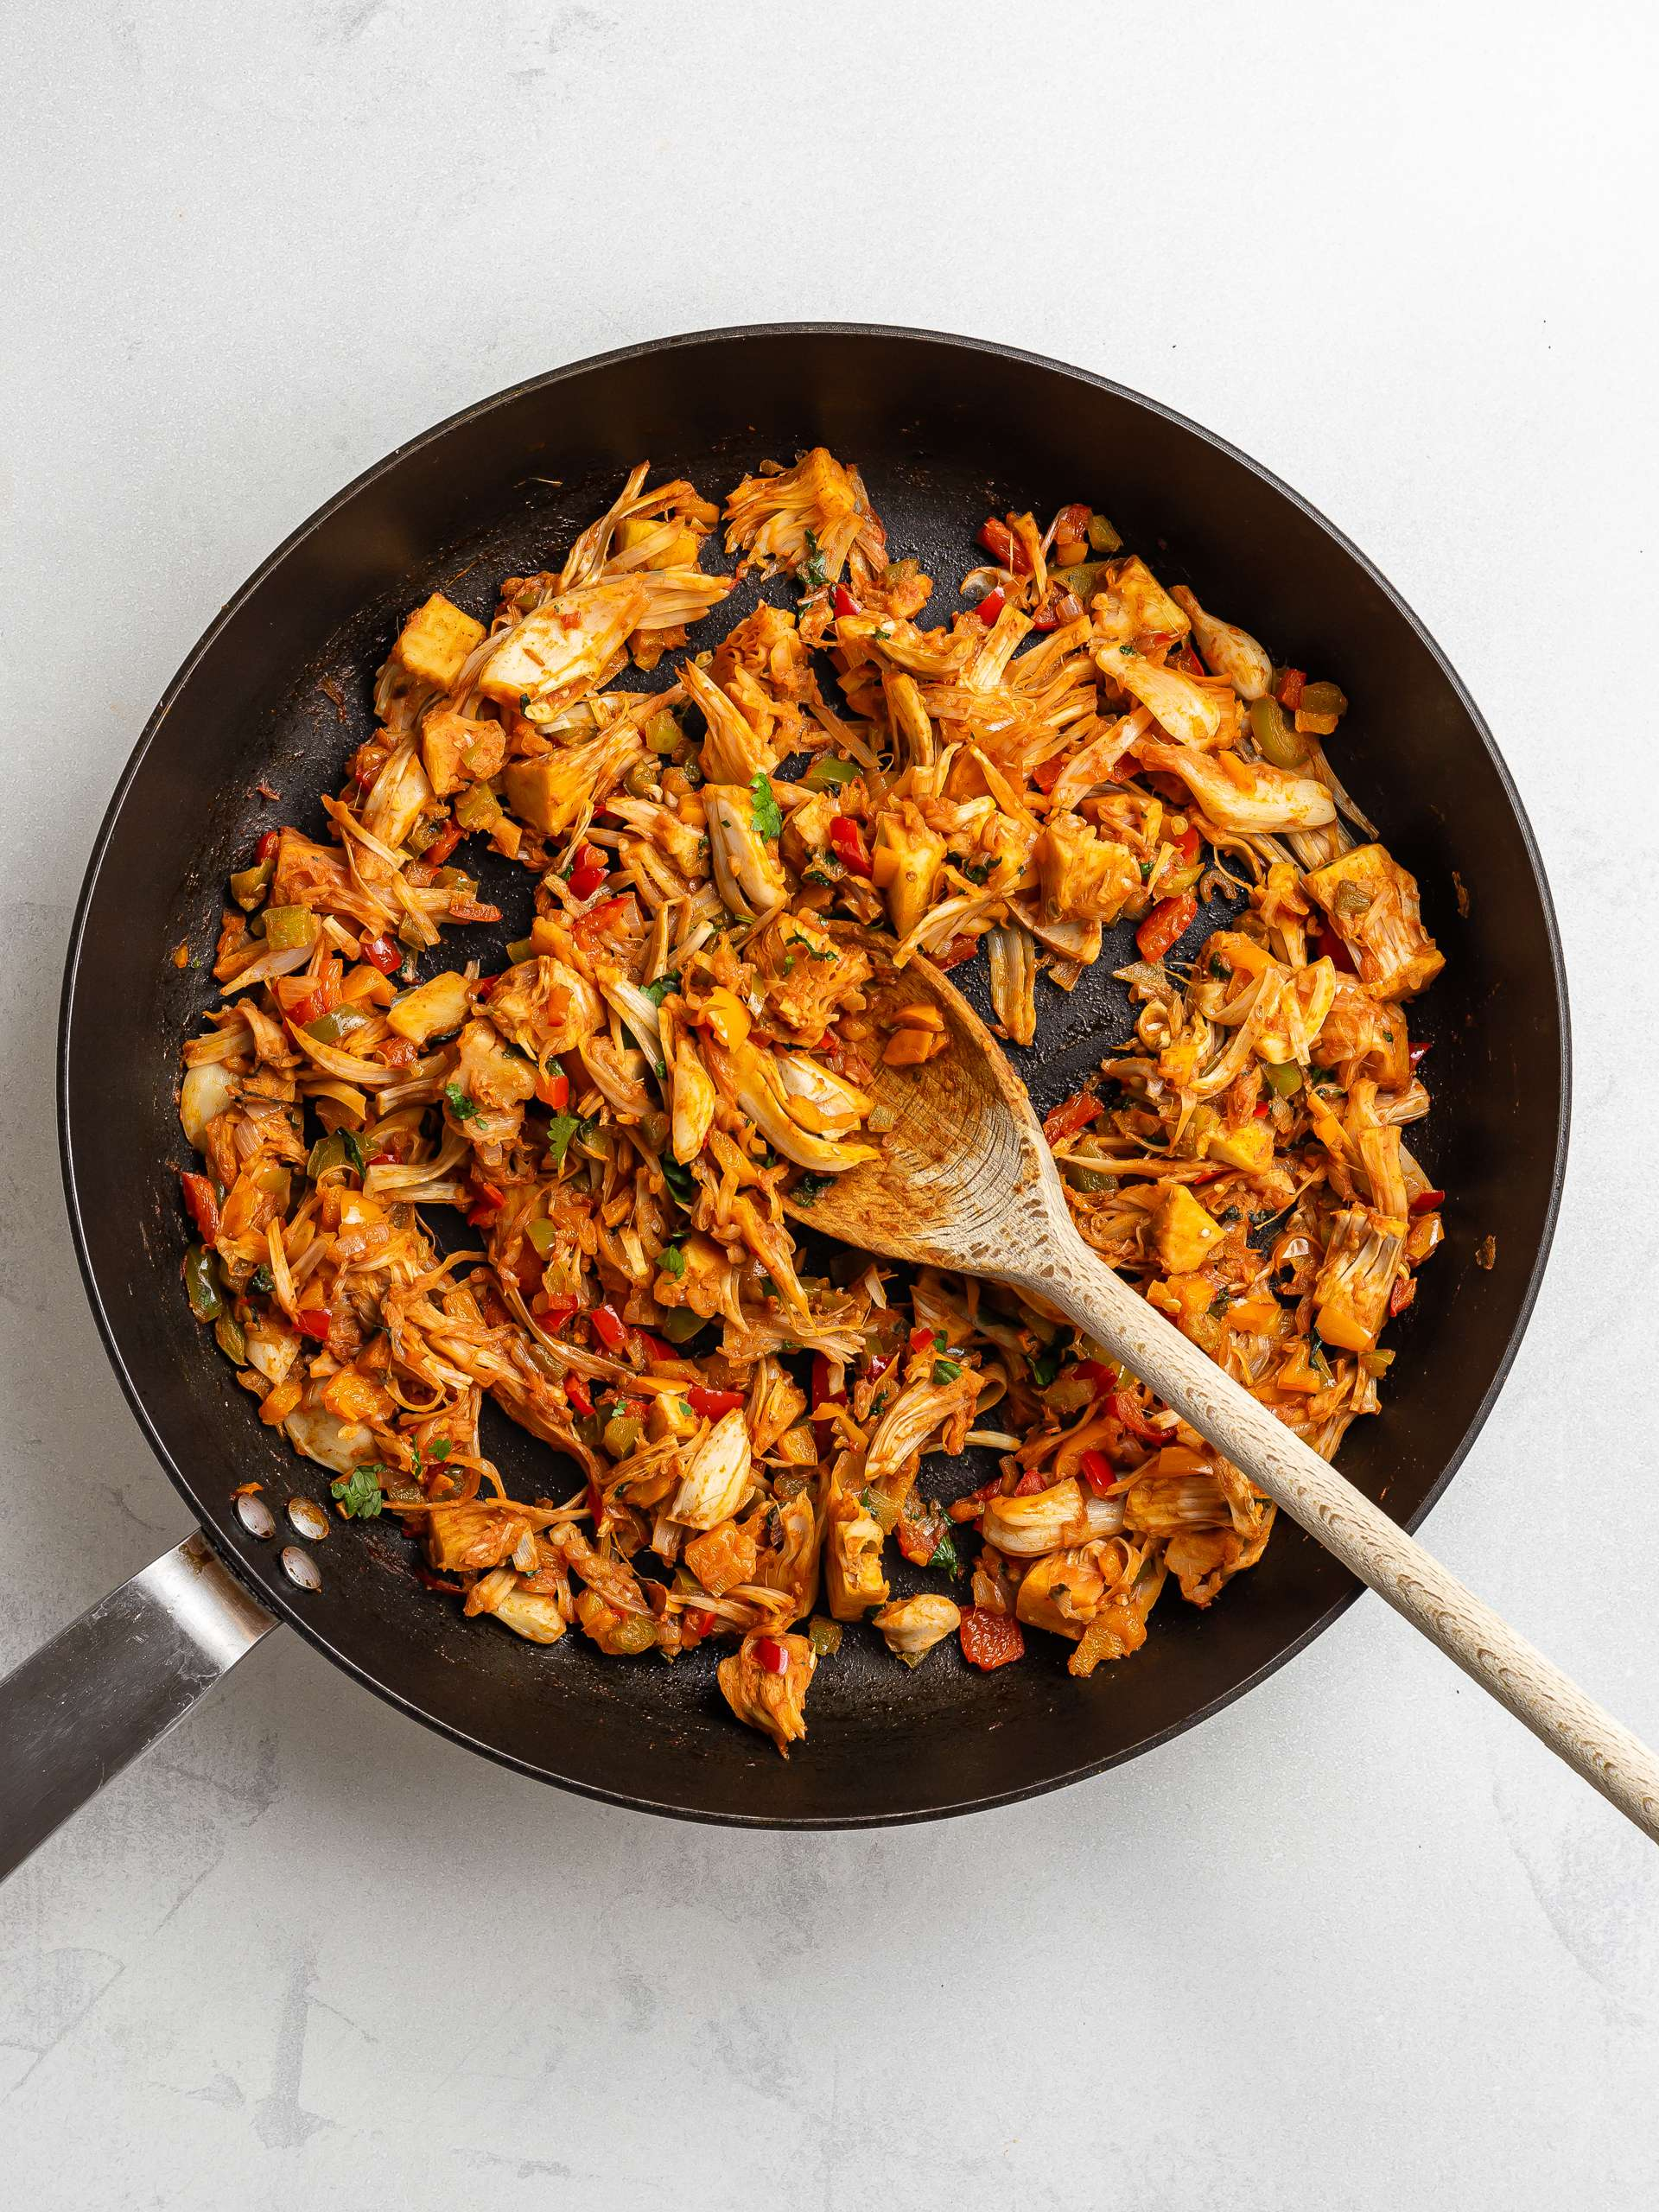 jackfruit and peppers cooked with enchilada sauce in a skillet